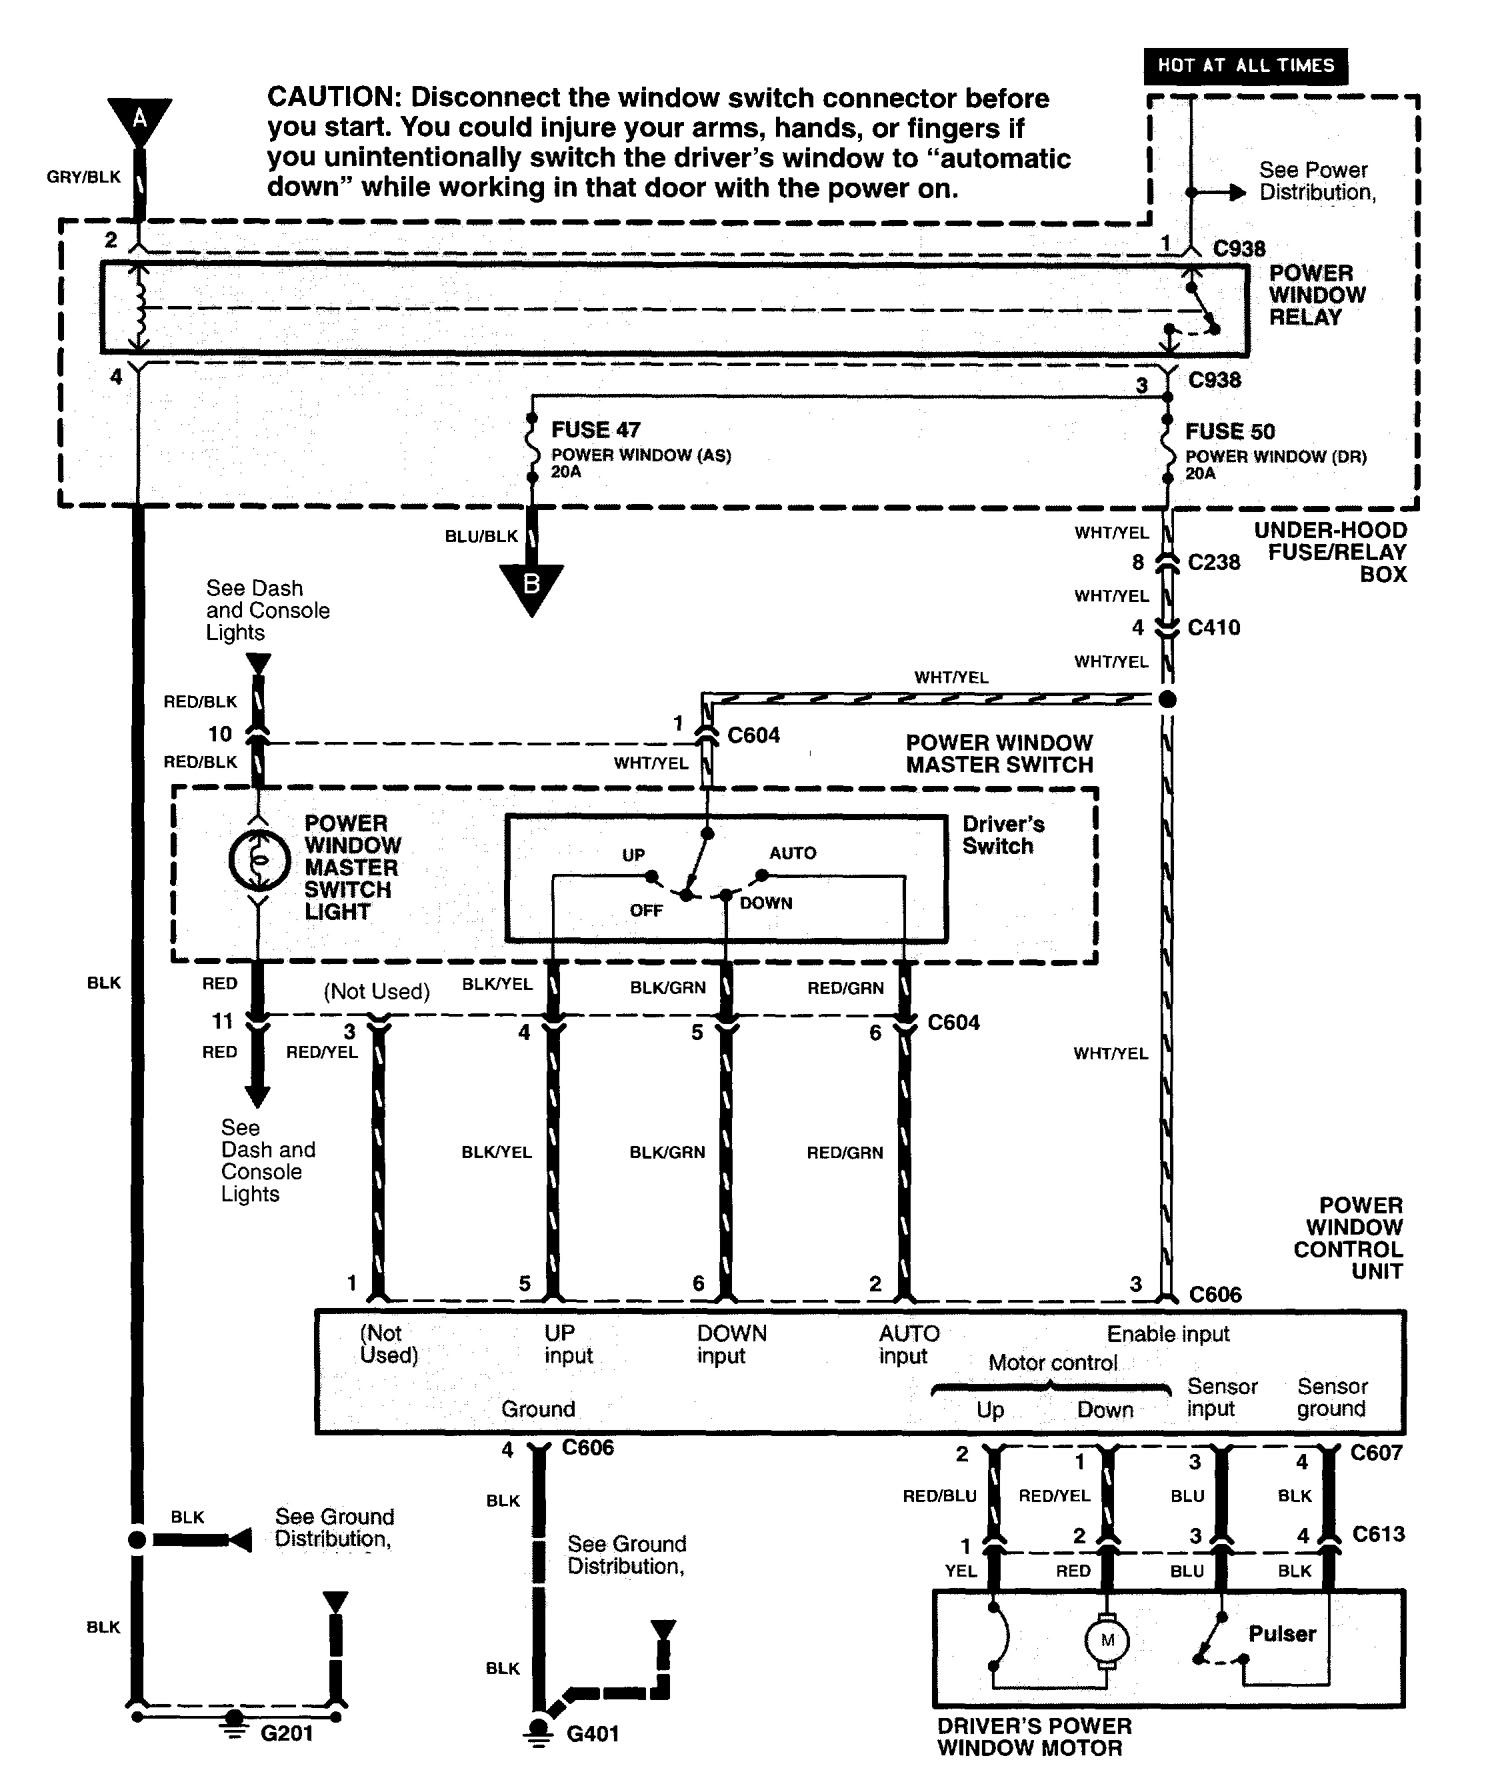 Radio Wiring Diagram 1991 Acura Integra Books Of For Ls Diagrams Volvo 240